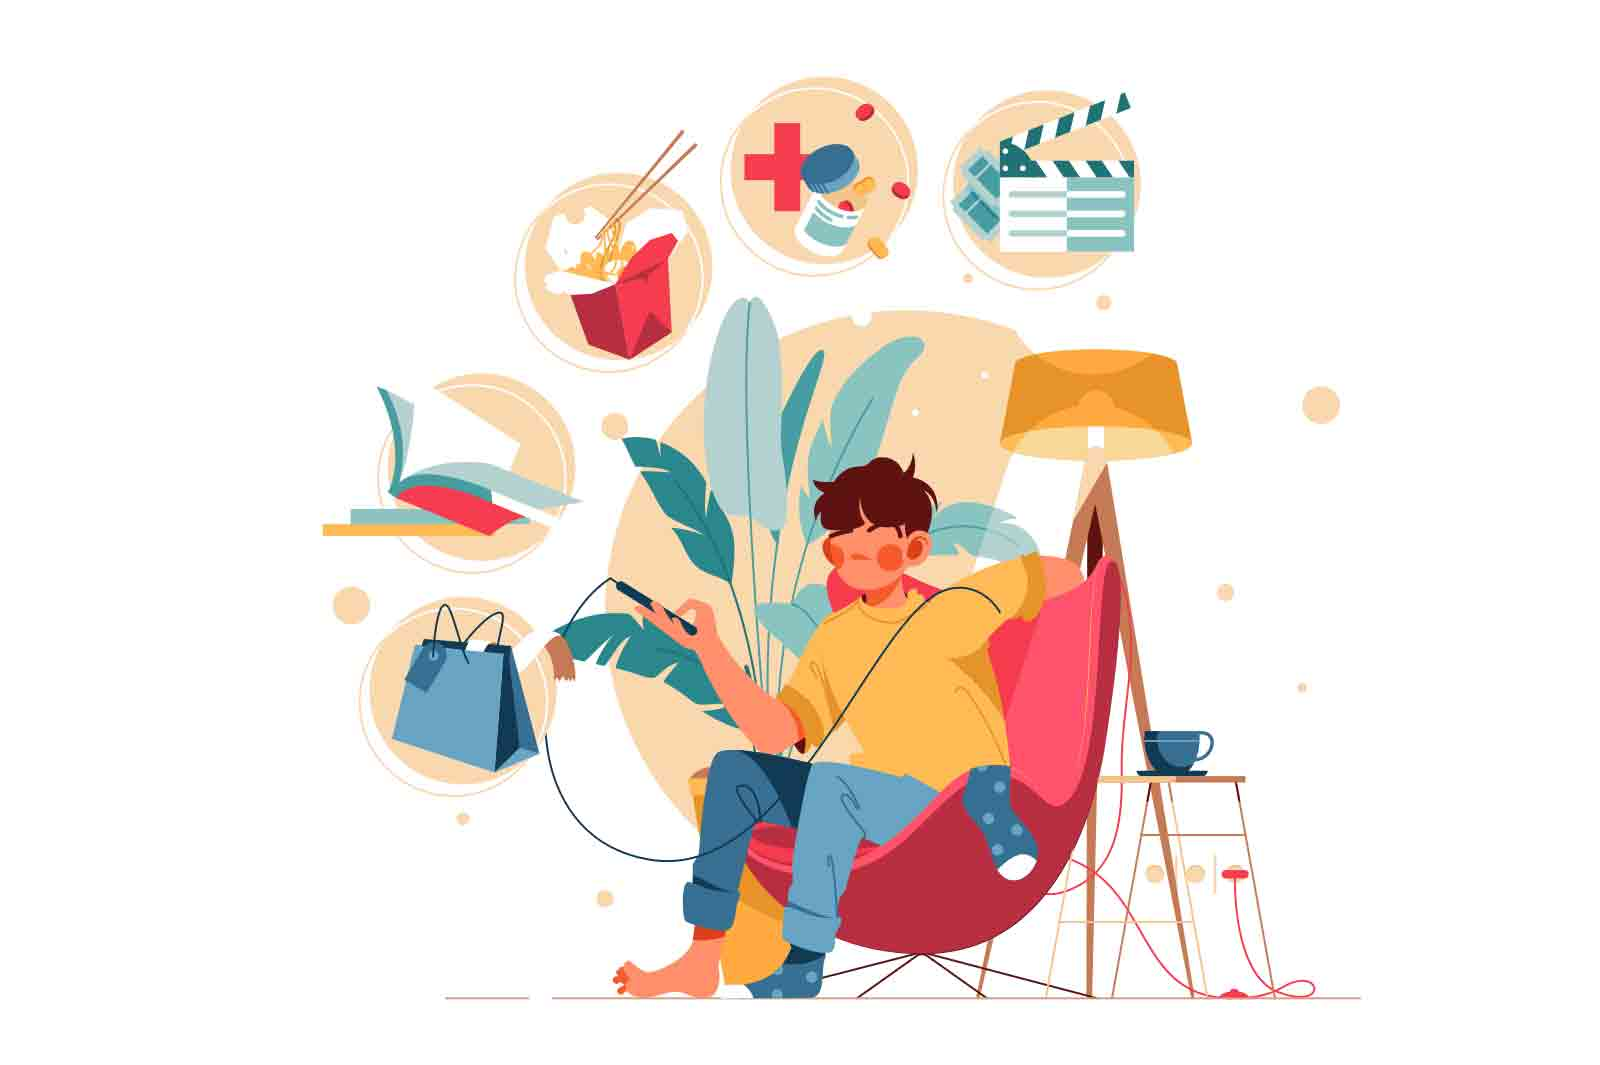 Guy using smartphone while stay at home Animation. Man character in chair holding mobile phone choosing online video or making an order. Lottie, After Effects.